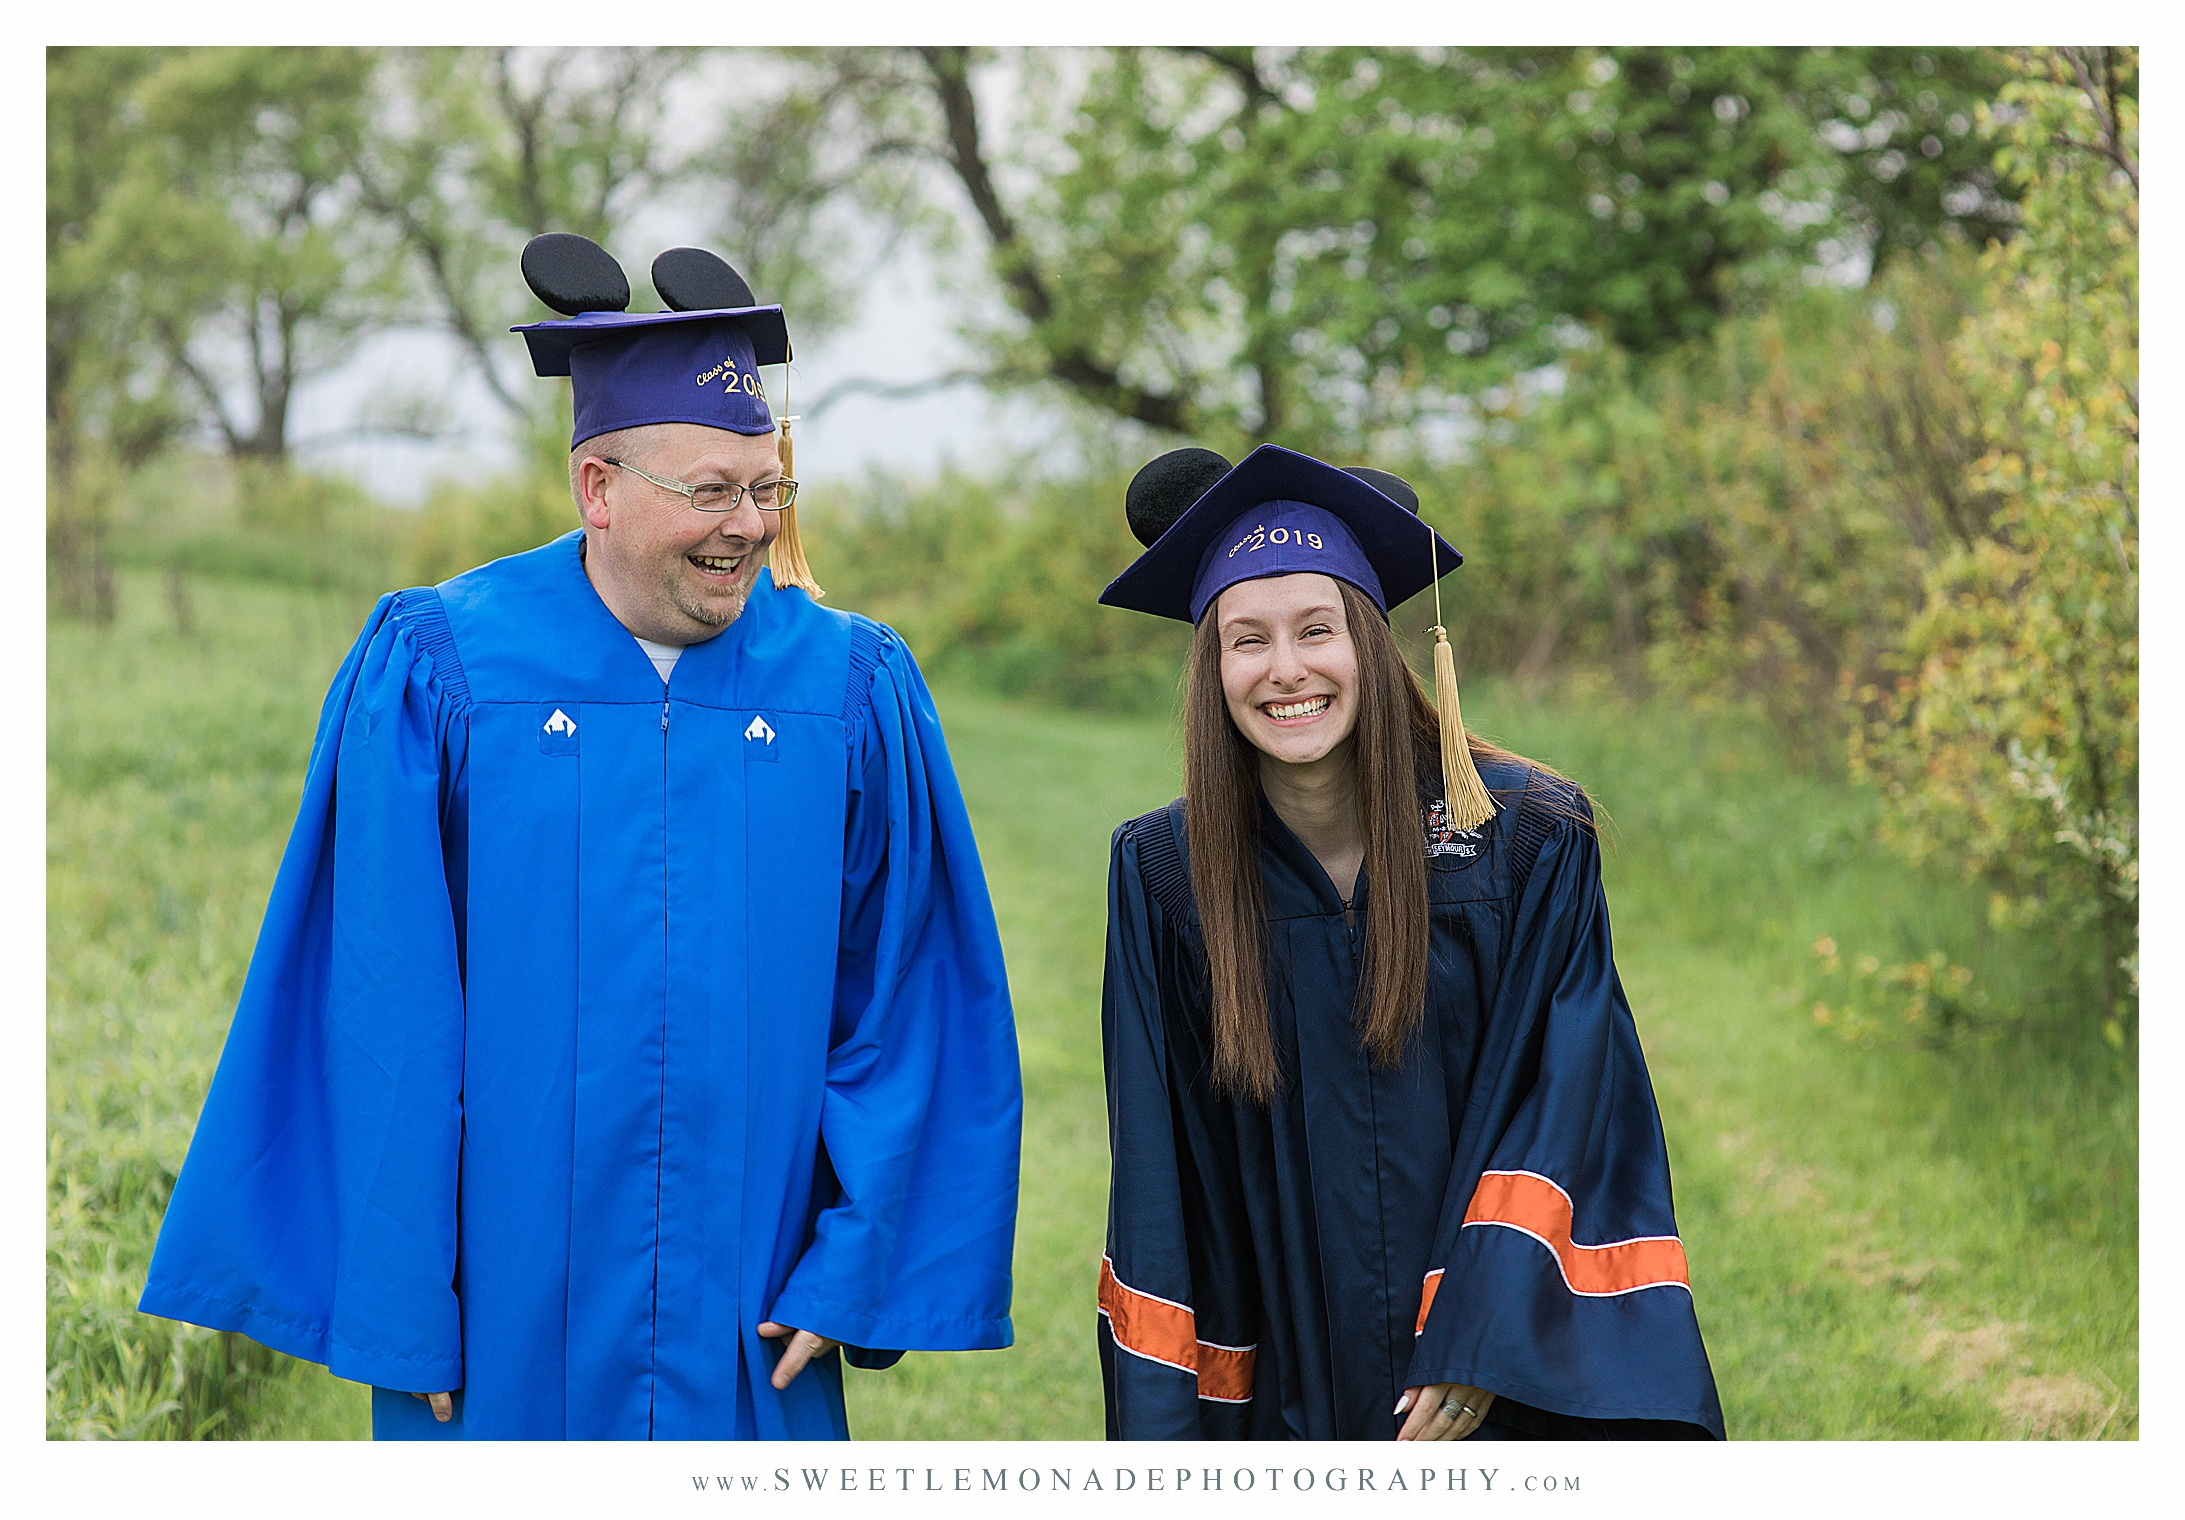 disney-mickey-ears-graduation-cap-pictures-mahomet-illinois-sweet-lemonade-photography_2434.jpg